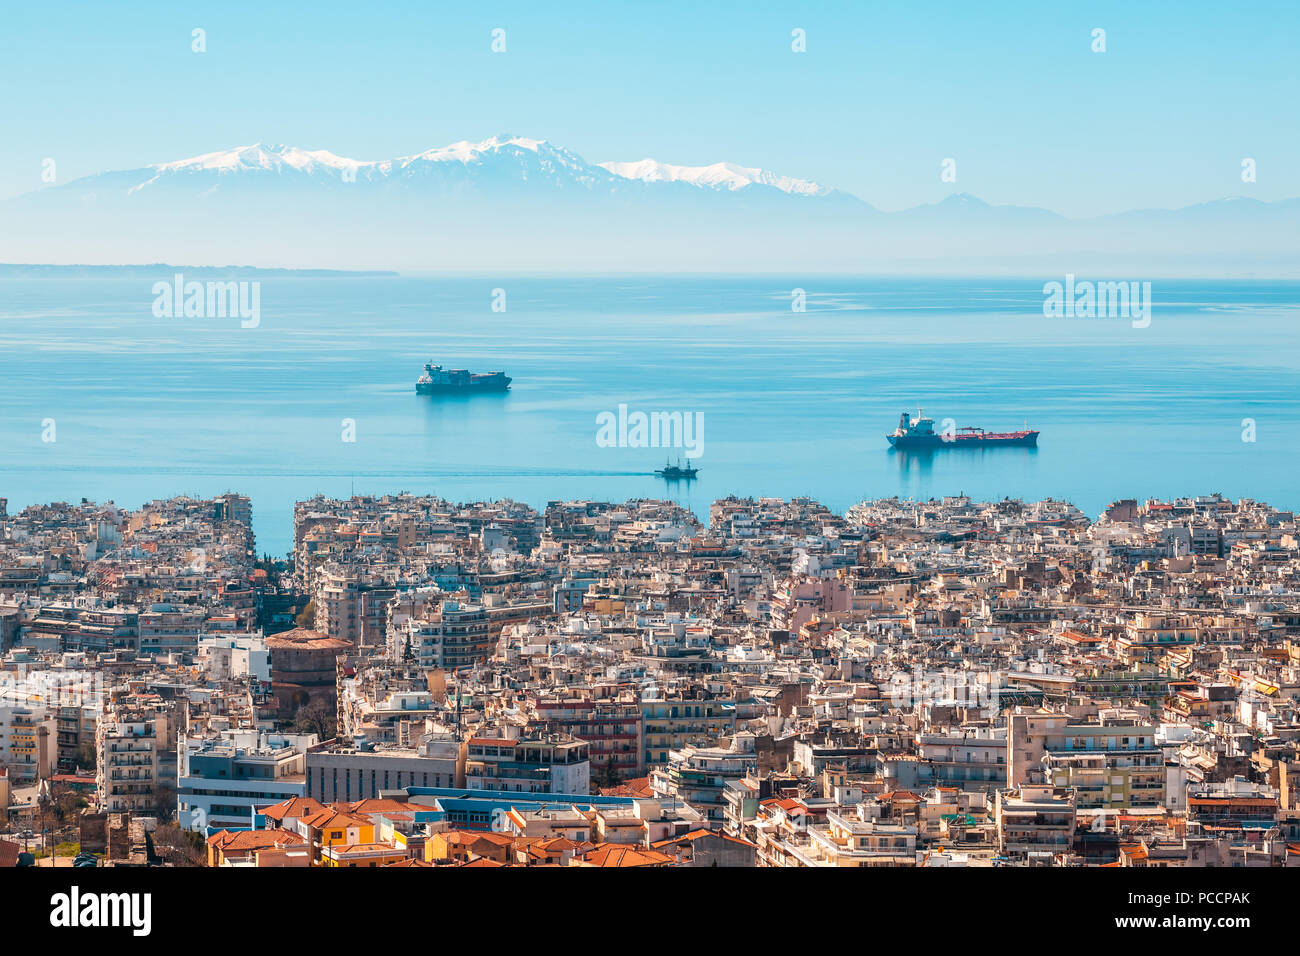 View of Thessaloniki city, the sea, ships and the olympous